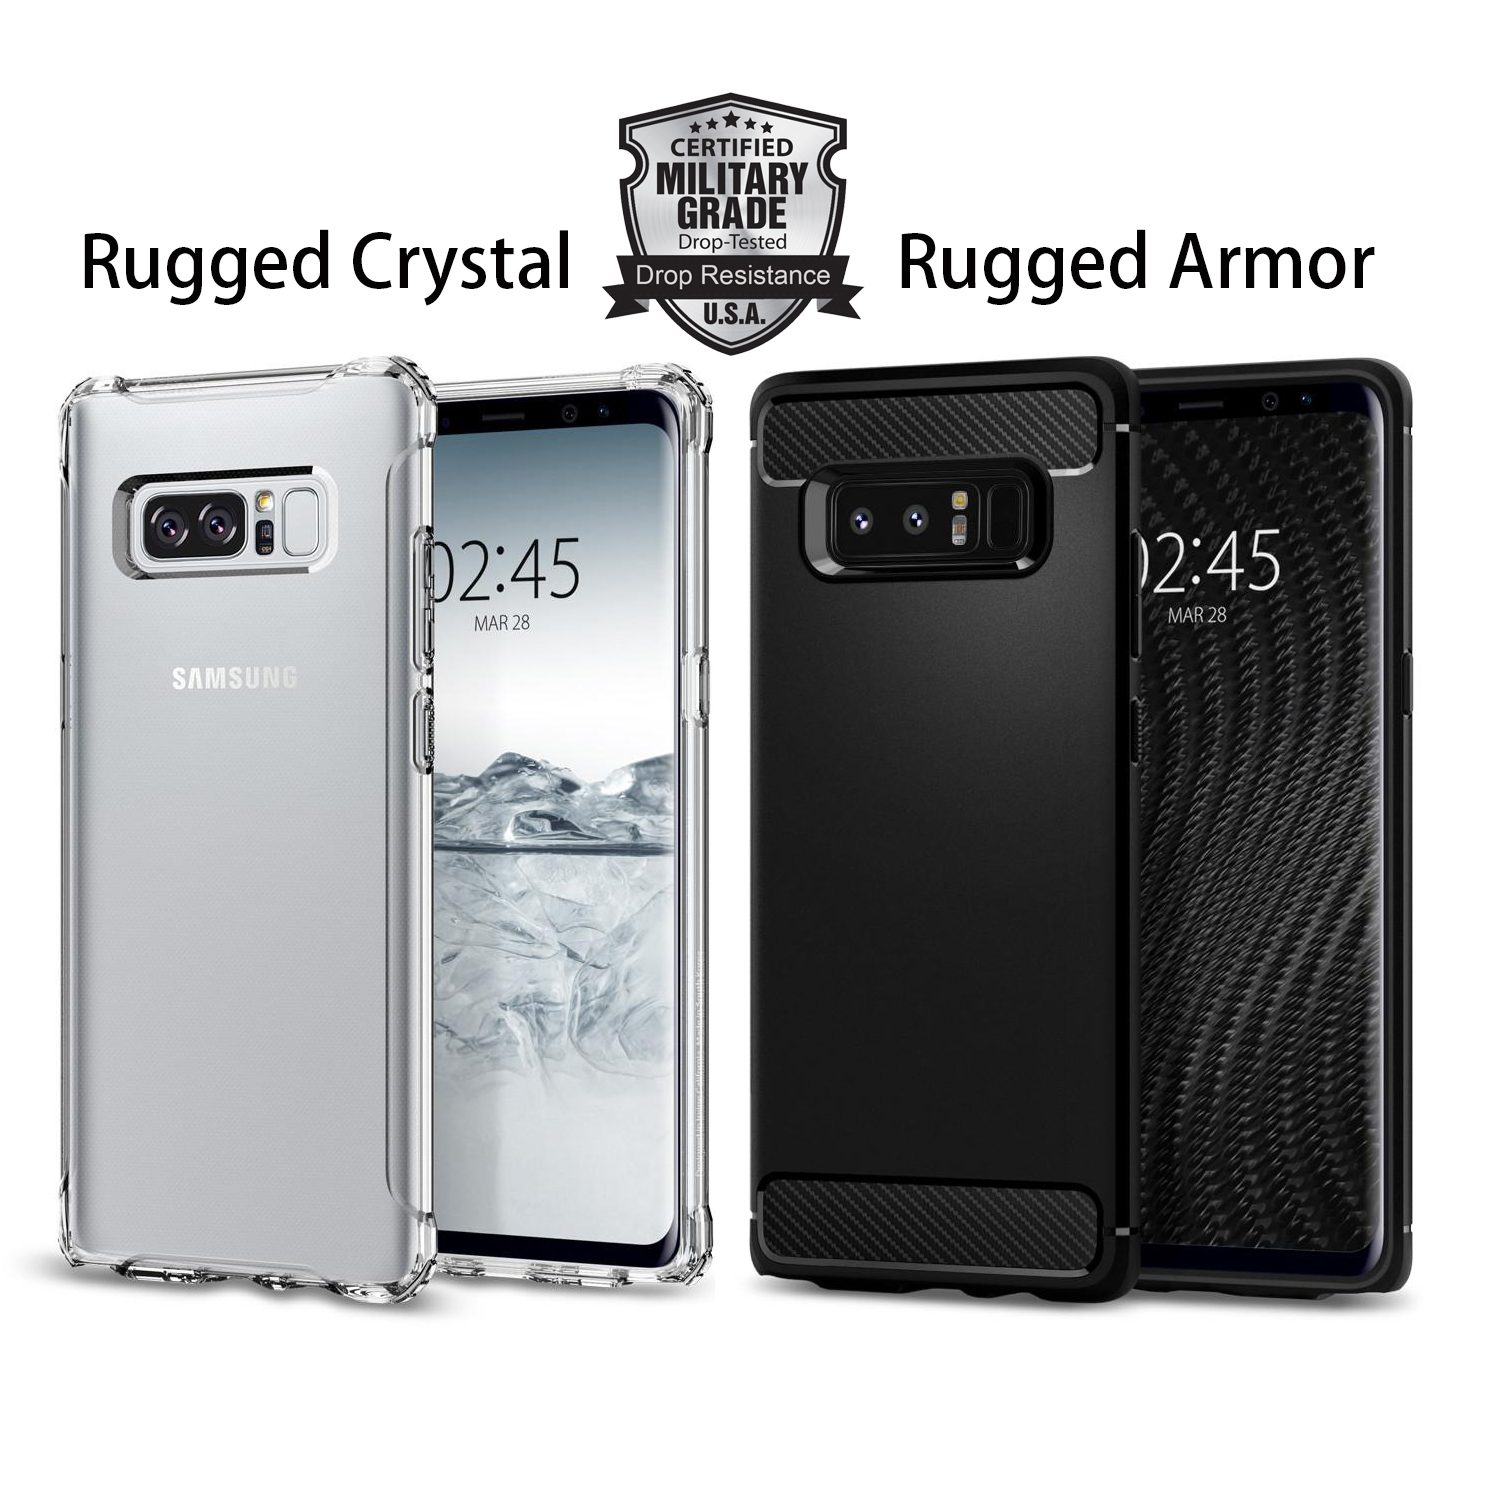 samsung supcase the unicorn duty phone for beetle cases android rugged rug best central heavy galaxy